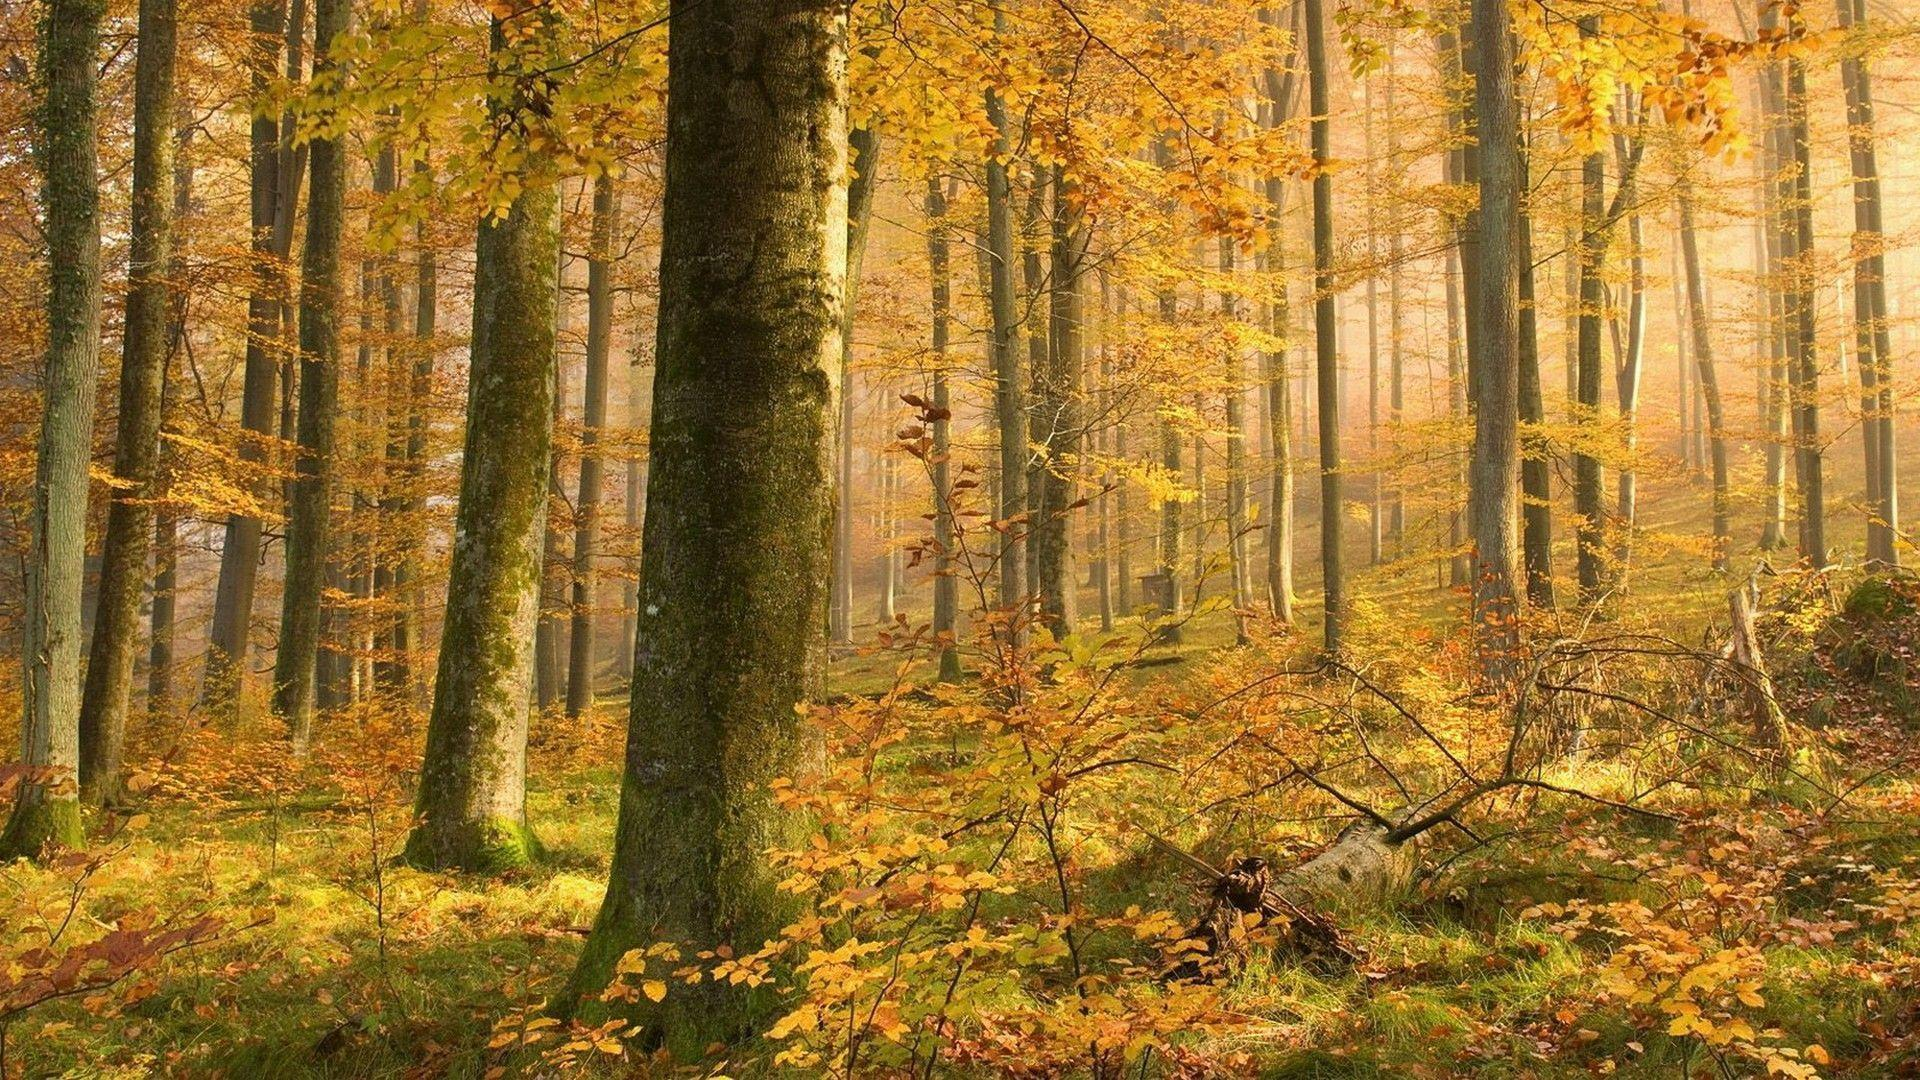 fall woods backgrounds wallpapers - photo #2